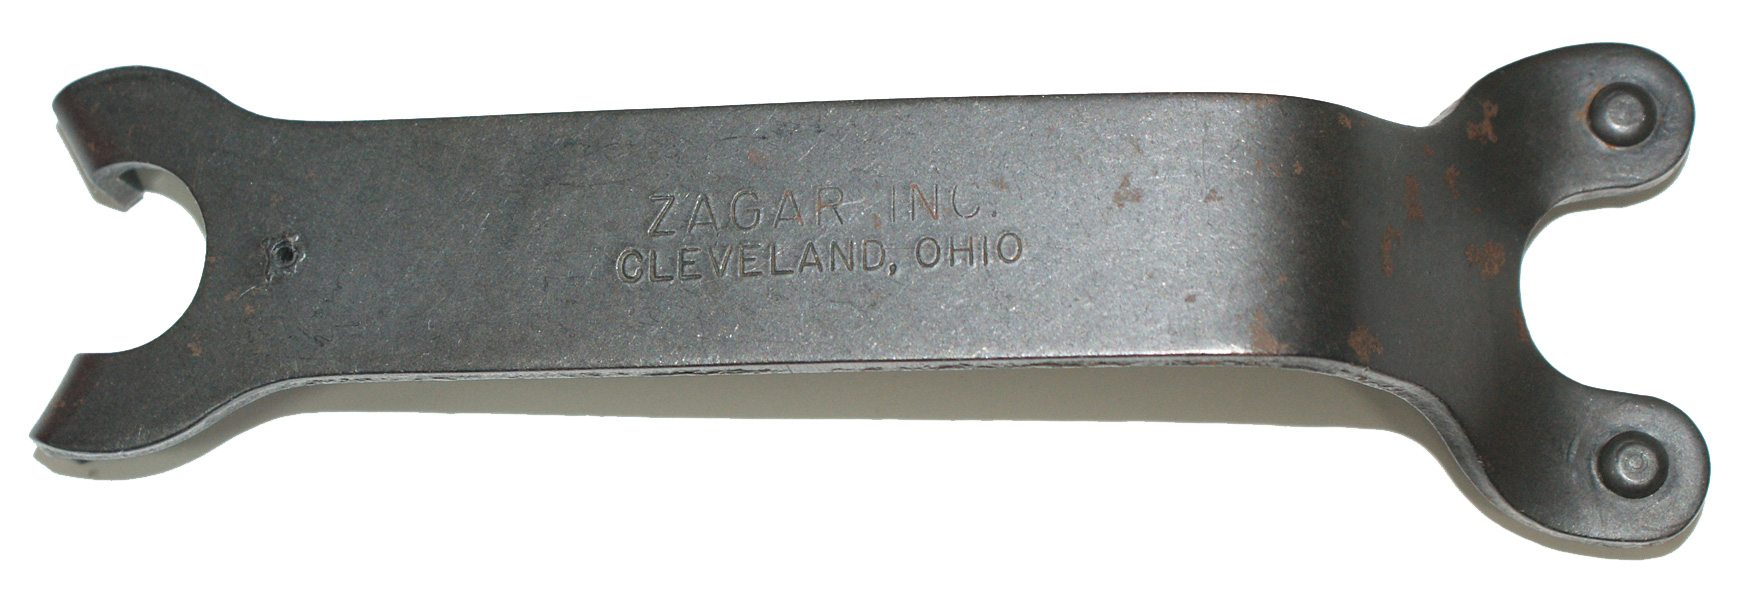 Zagar Collet Wrench 5C 3-Slot 707-191